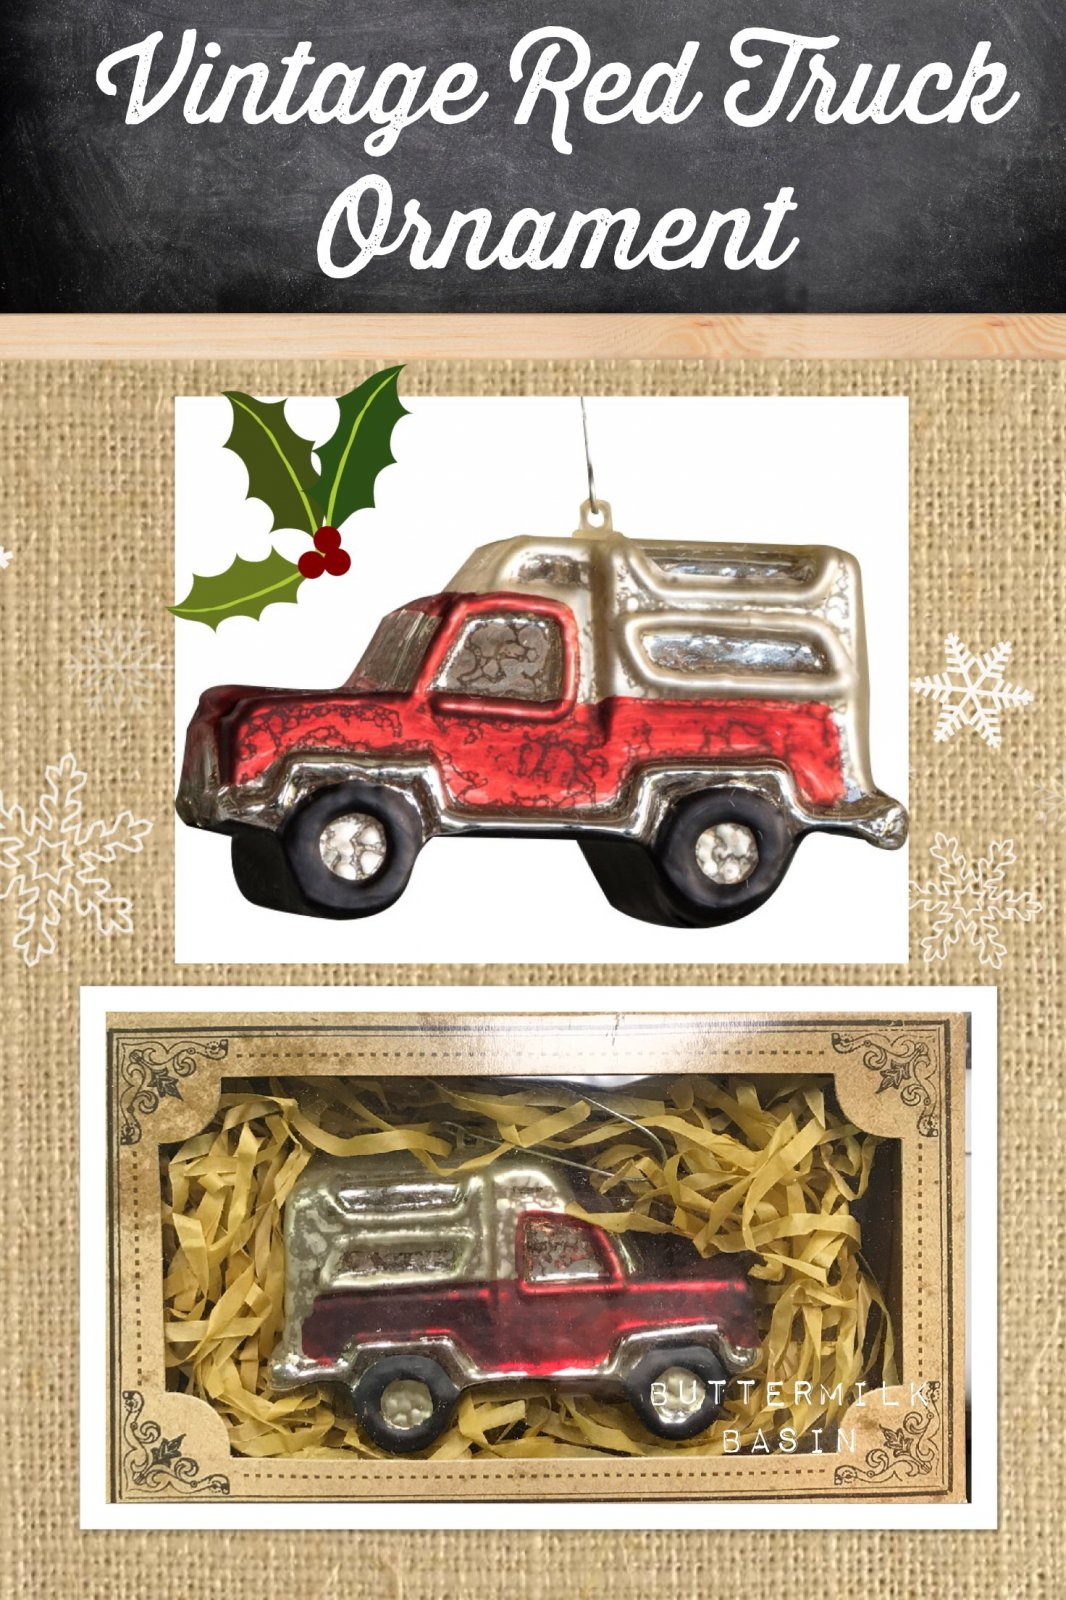 Vintage Red Truck Ornament